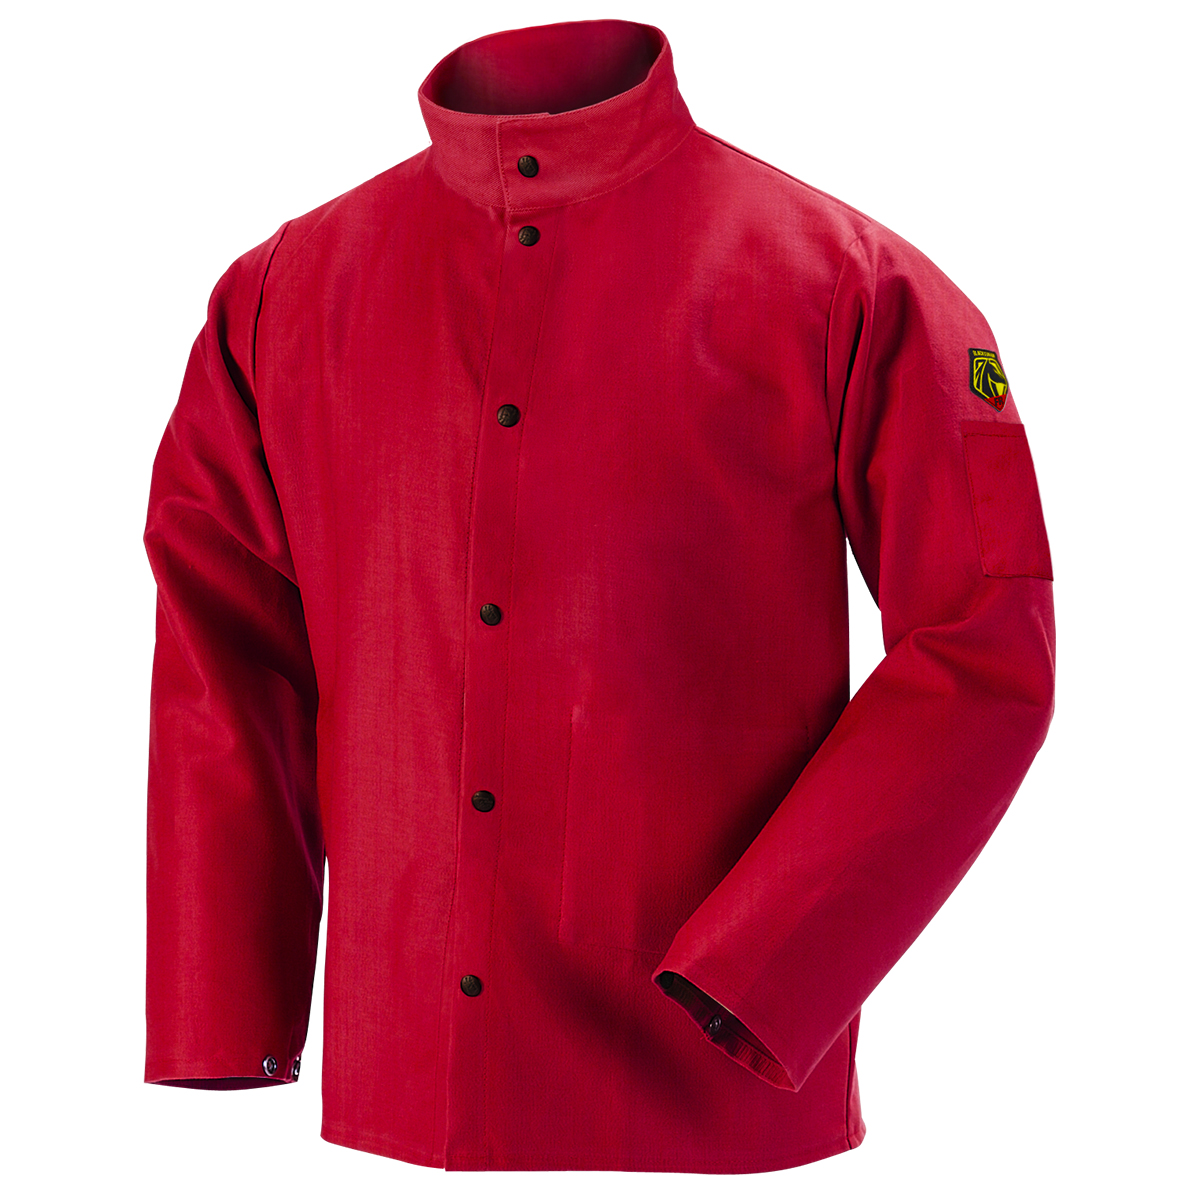 TruGuard™ 200 FR Cotton Welding Jacket, Red